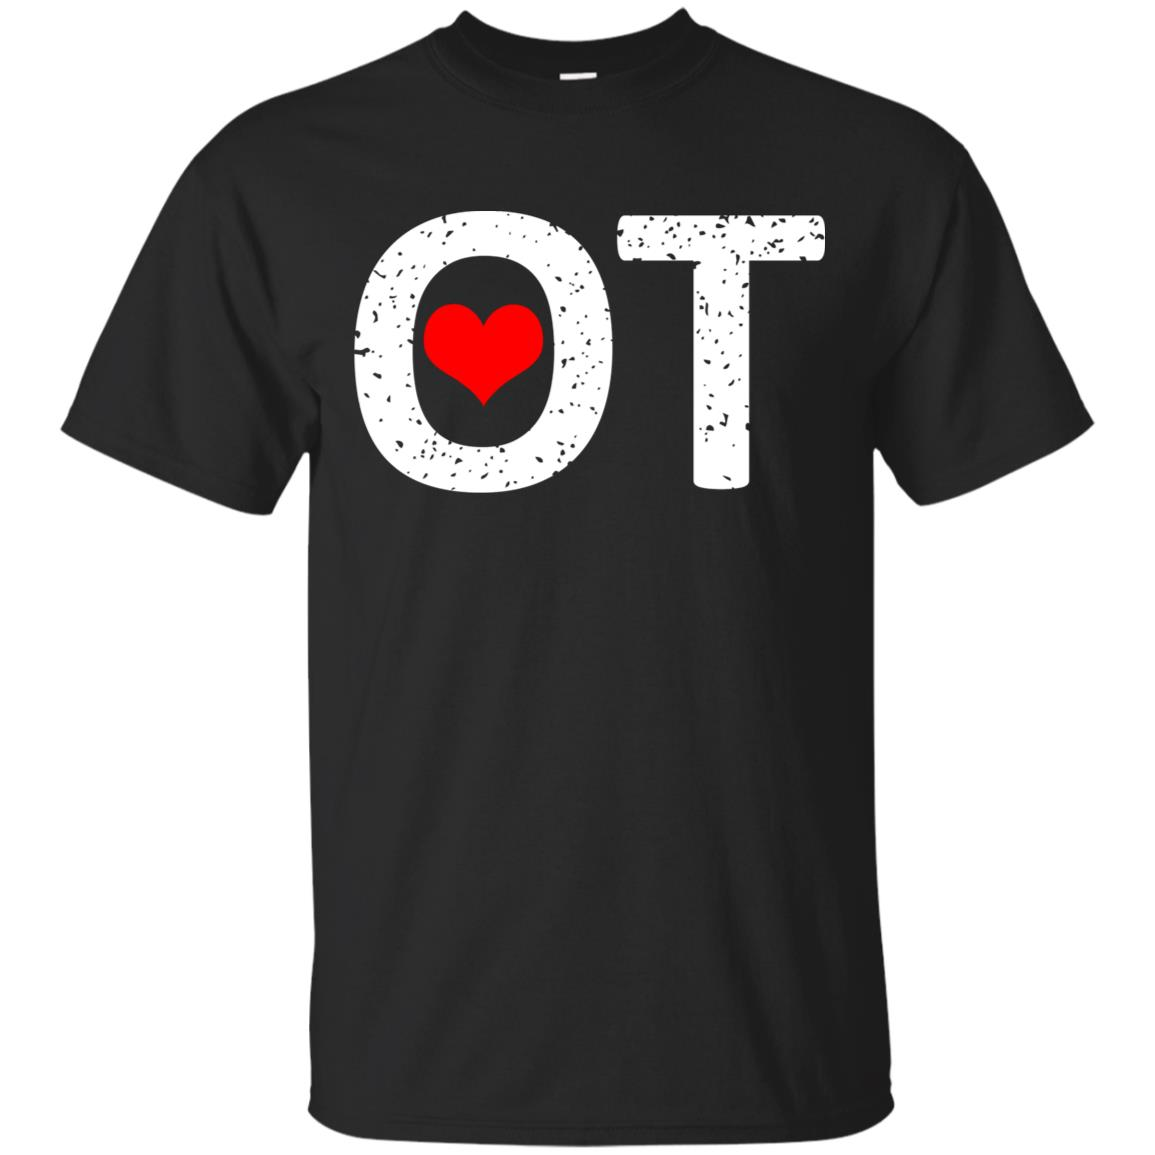 Occupational Therapy Ot Squad Heart Unisex Short Sleeve